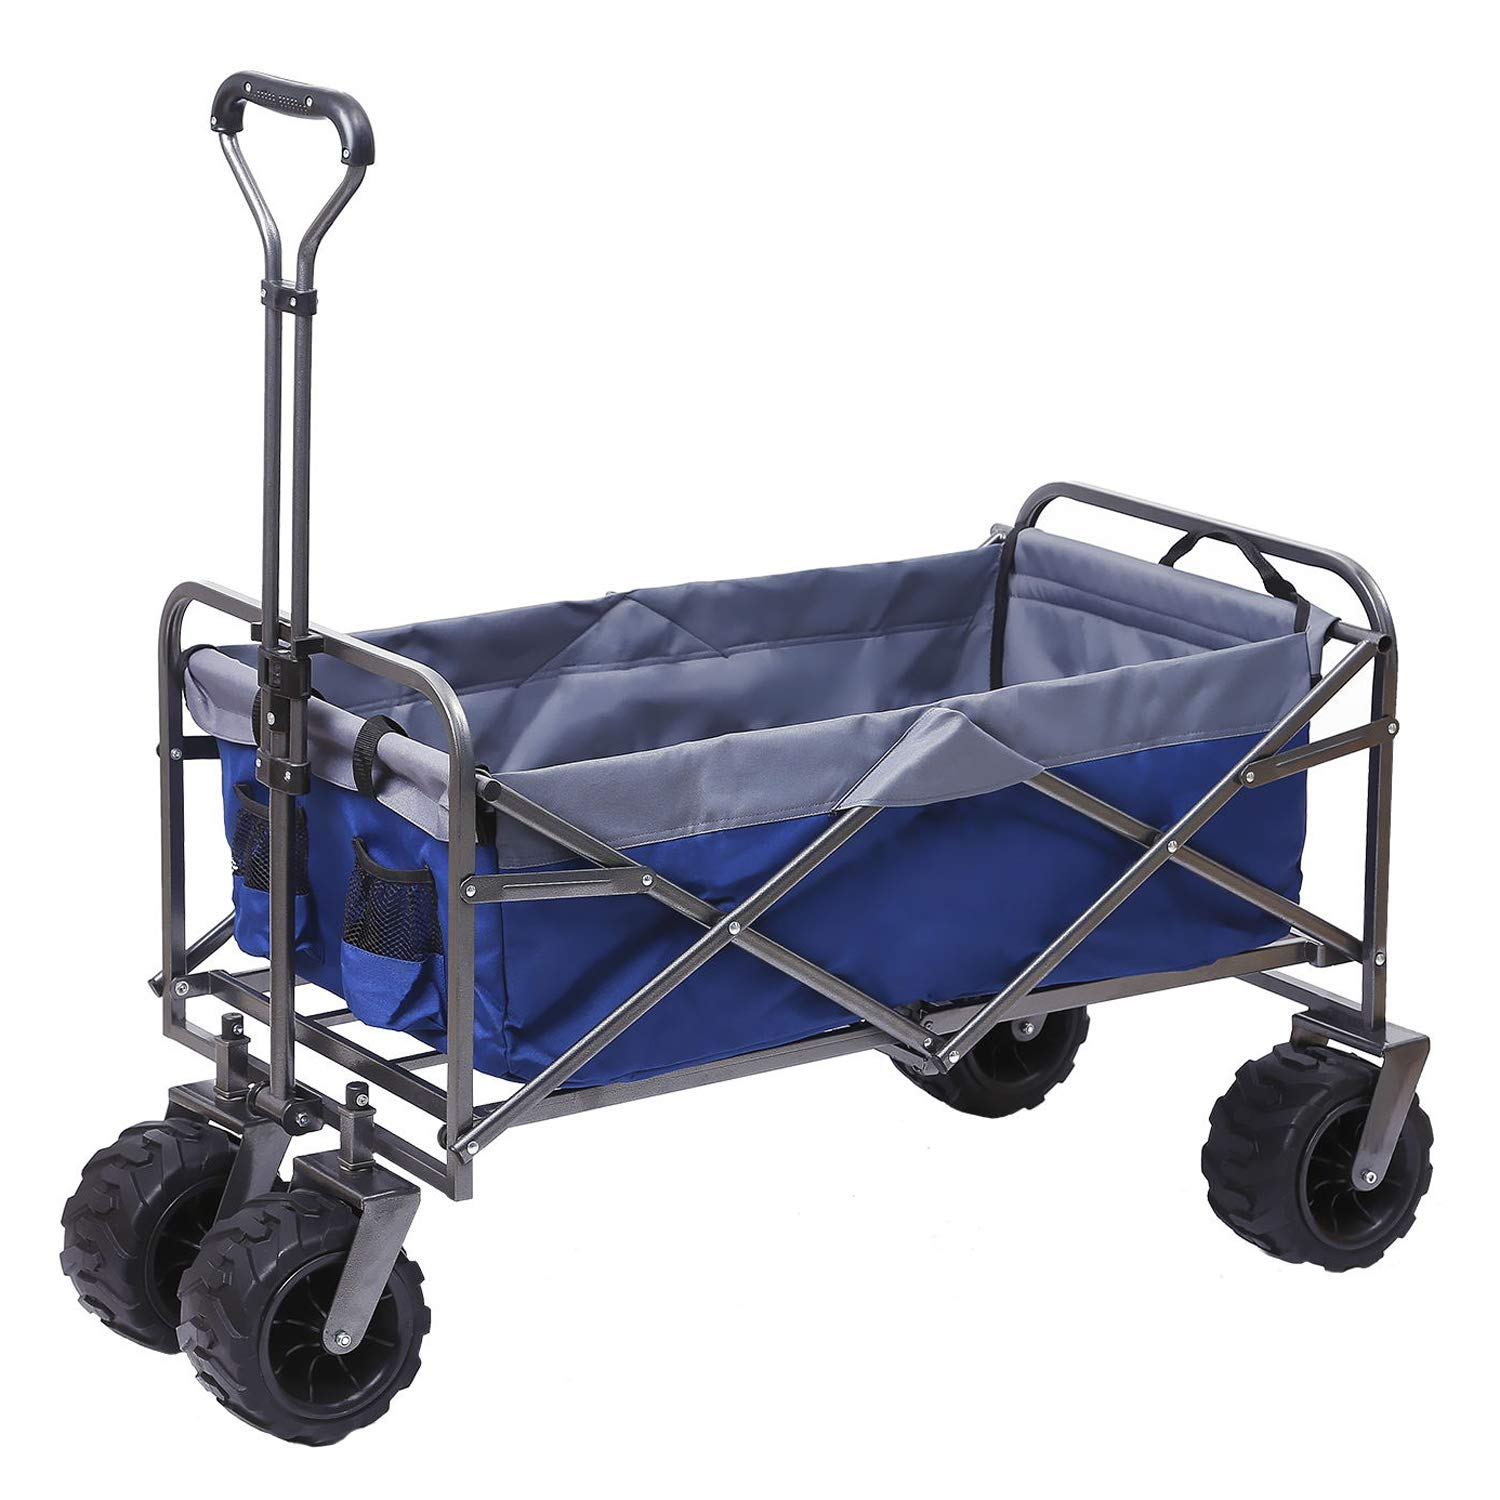 ARTPUCH Folding Wagon All-Terrain Collapsible Utility Garden Cart Heavy Duty for Shopping and Outdoor Activities, Big Wheels Navy